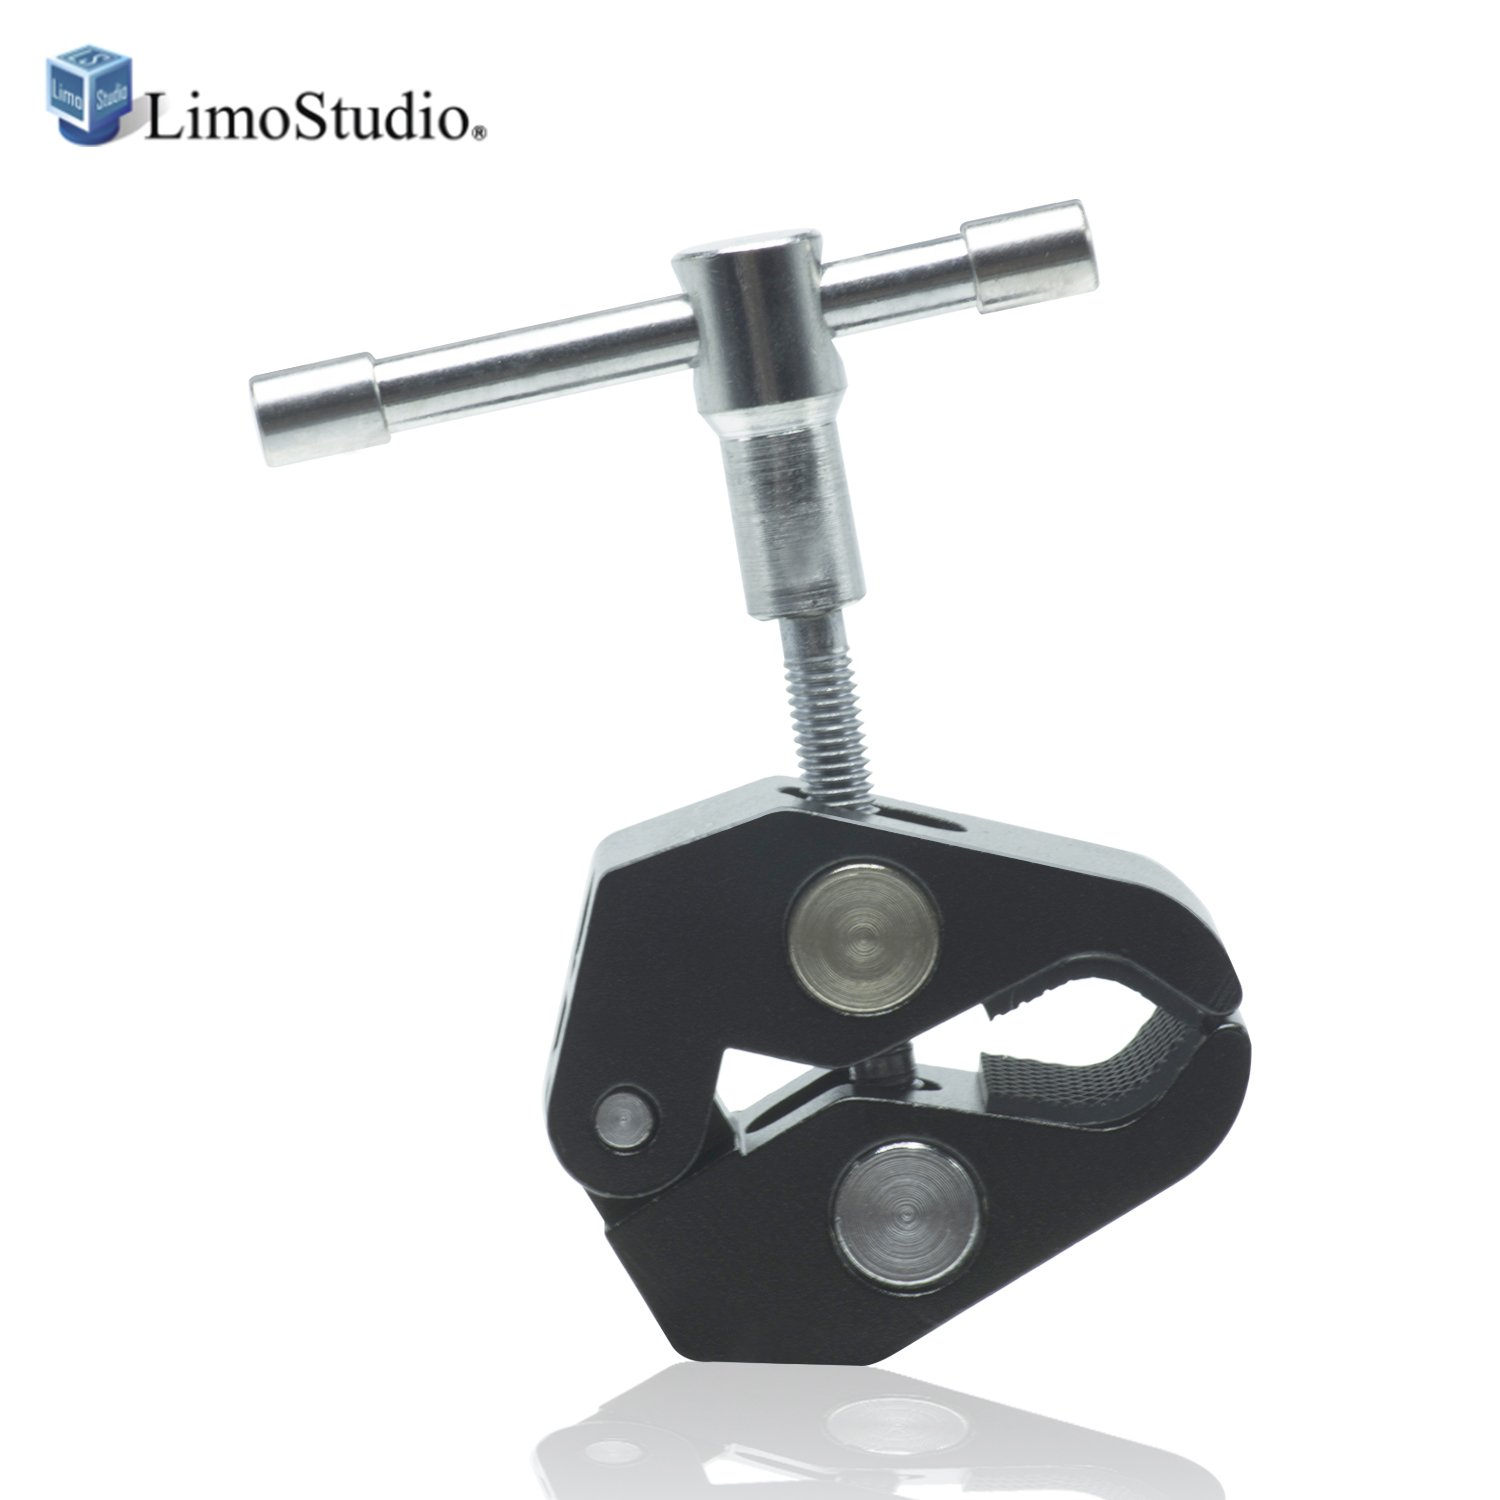 """LimoStudio Super Clamp 1/4"""" & 3/8"""" Threads Rob Clamp Pliers Clip for Cameras, Flash, Monitors, Lights, Rods, Umbrellas, Hooks, Shelves, Cross Bars, Plate Glass, AGG2424"""